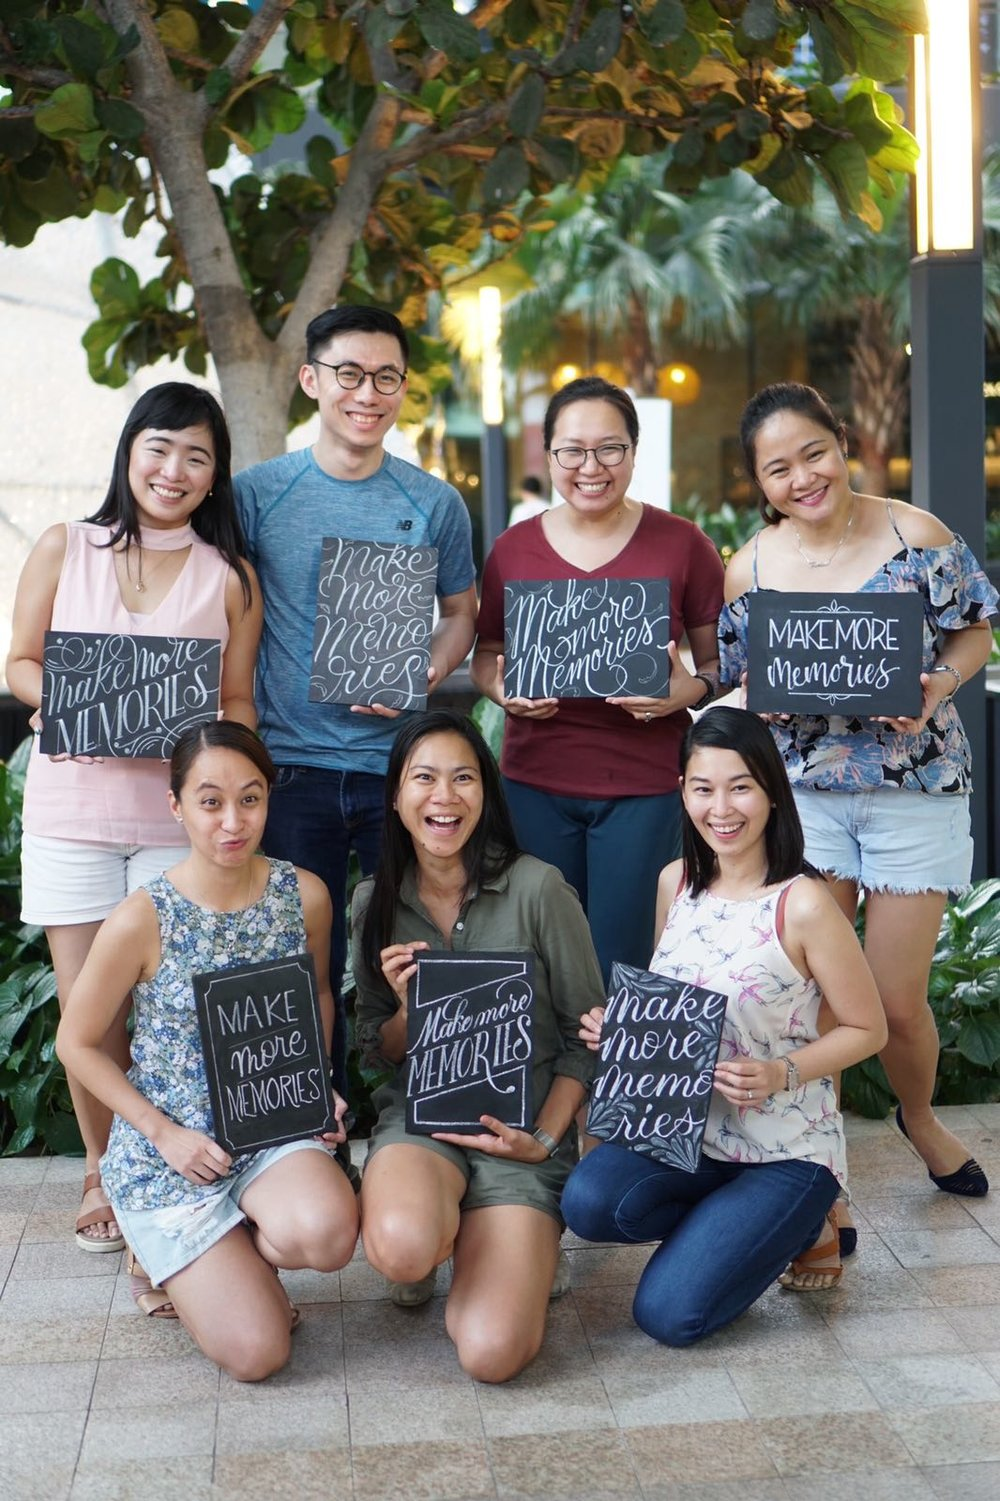 July 7, 2018 - Chalk Lettering Workshop at Caffe Vergnagno